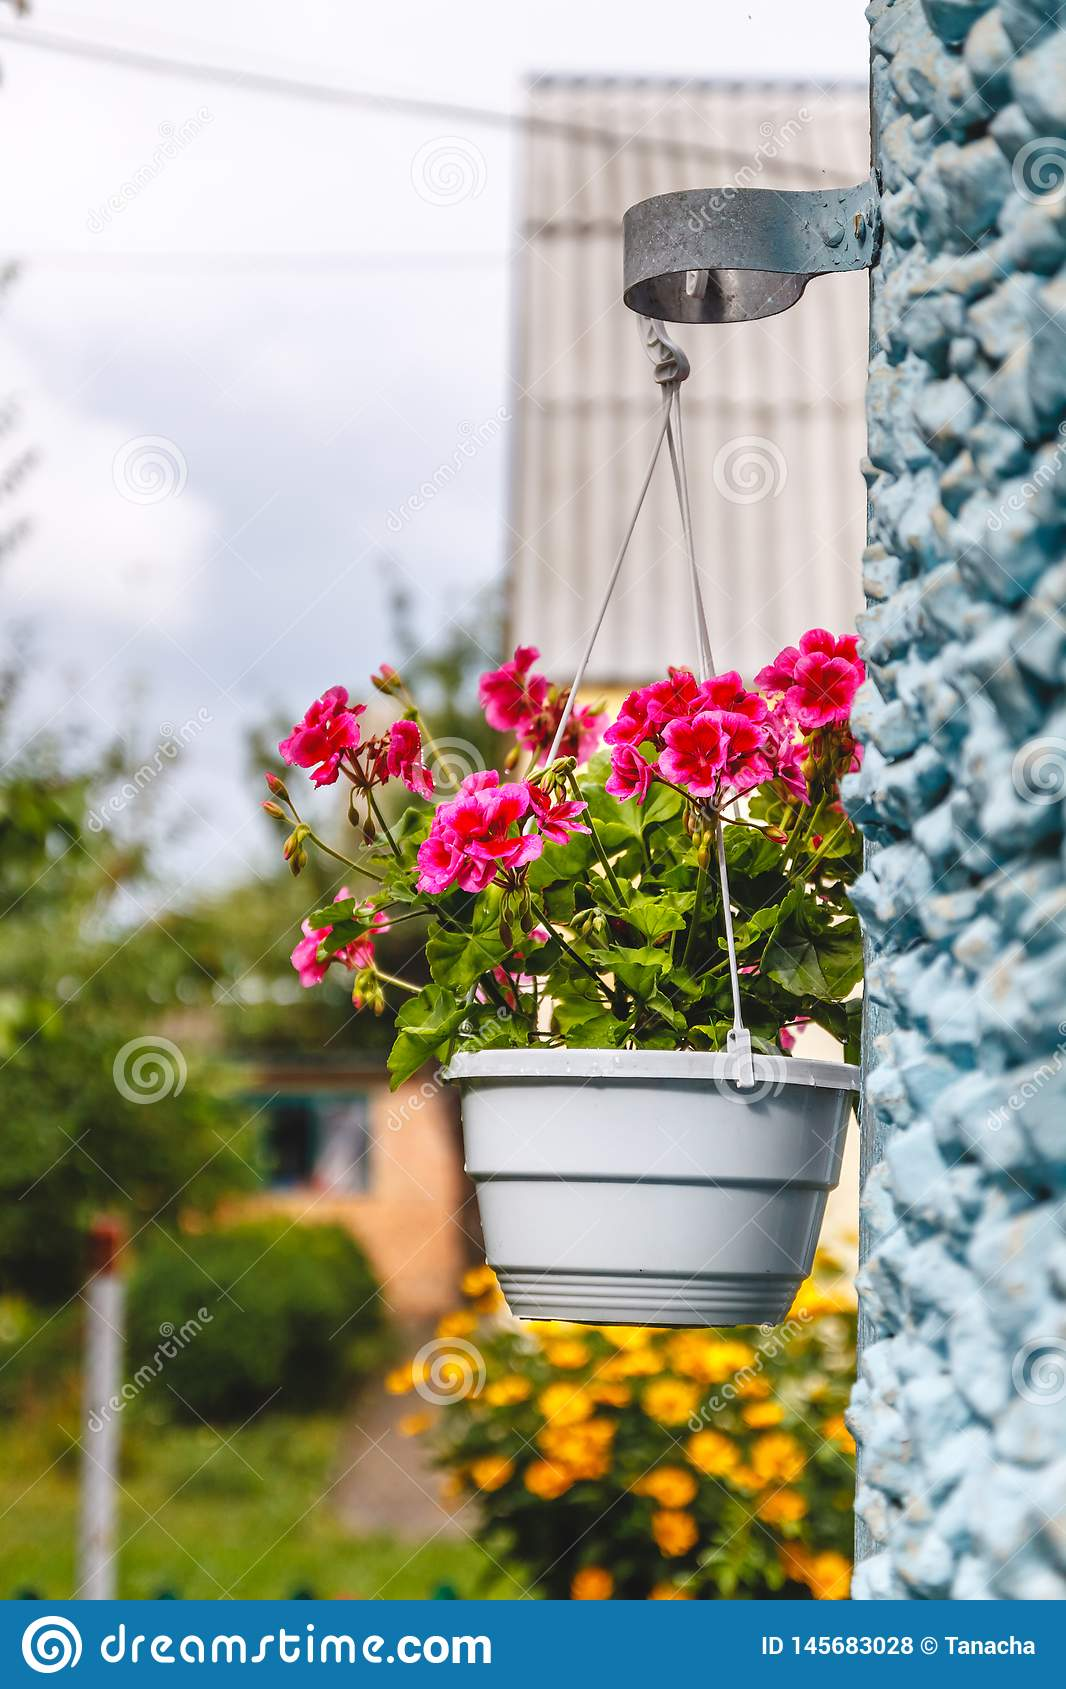 Decor outside the house, pink geraniums in a hanging flowerpot on the wall of the house